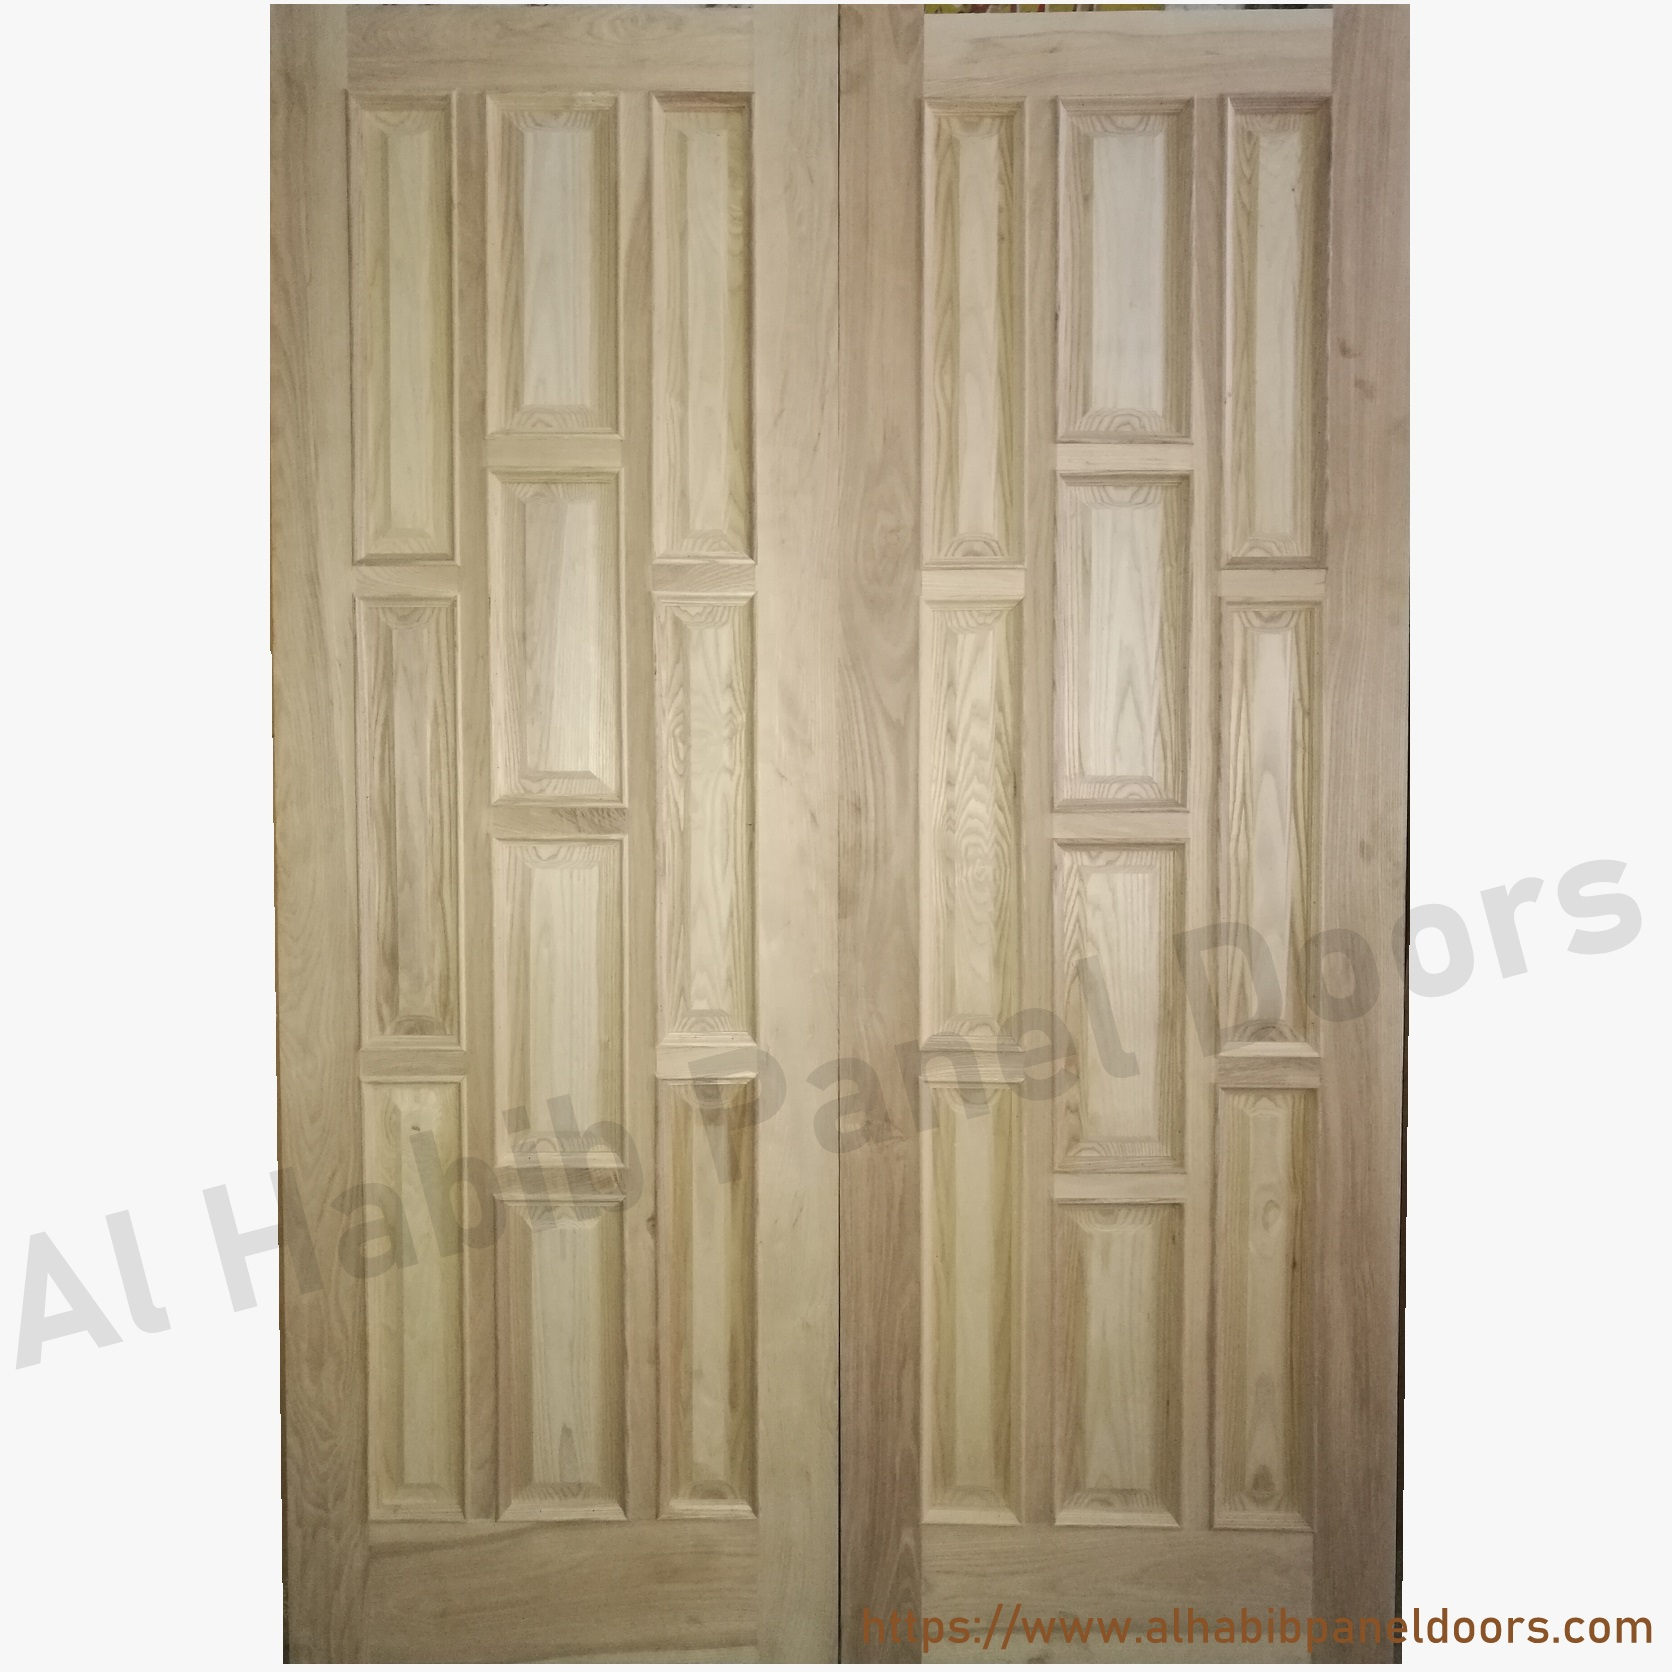 Latest Design For Main Door Of Diyar Solid Wood Main Double Door Hpd412 Main Doors Al  sc 1 st  Trazze.com & Diyar Solid Wood Main Double Door Hpd412 Main Doors Al Of Latest ...